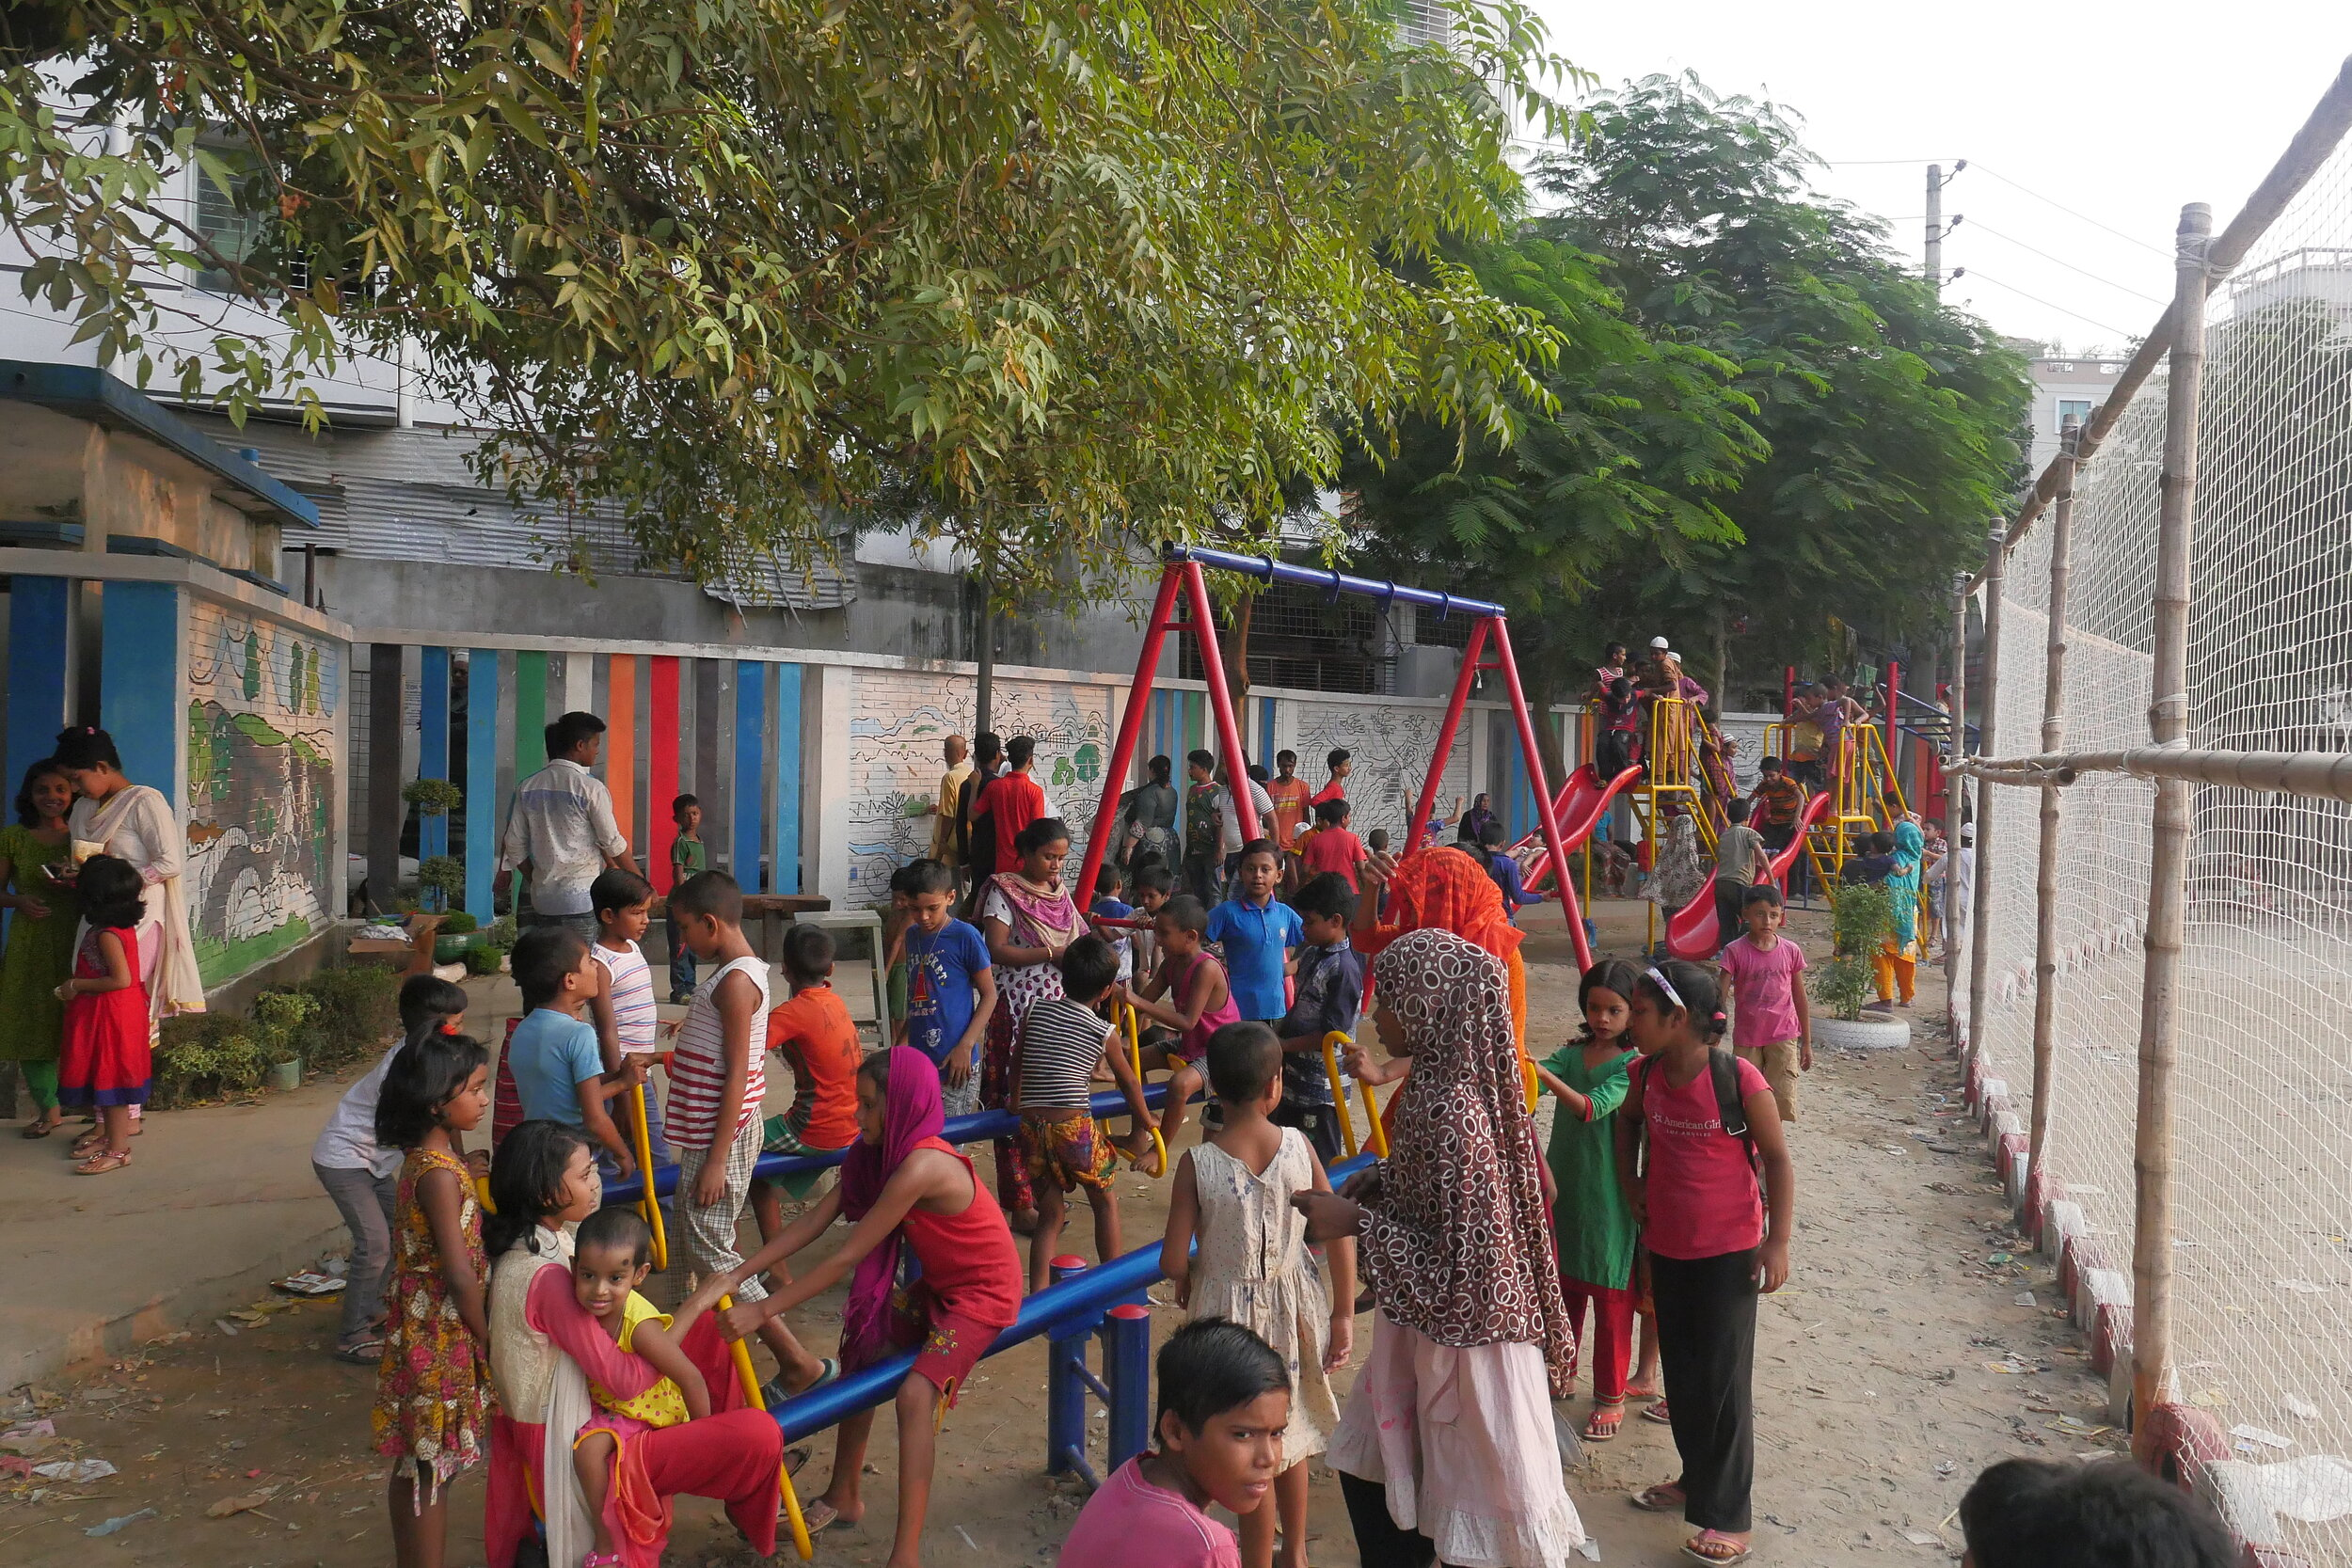 Dhaka residents gather at the renovated playground. Credit: UN-Habitat